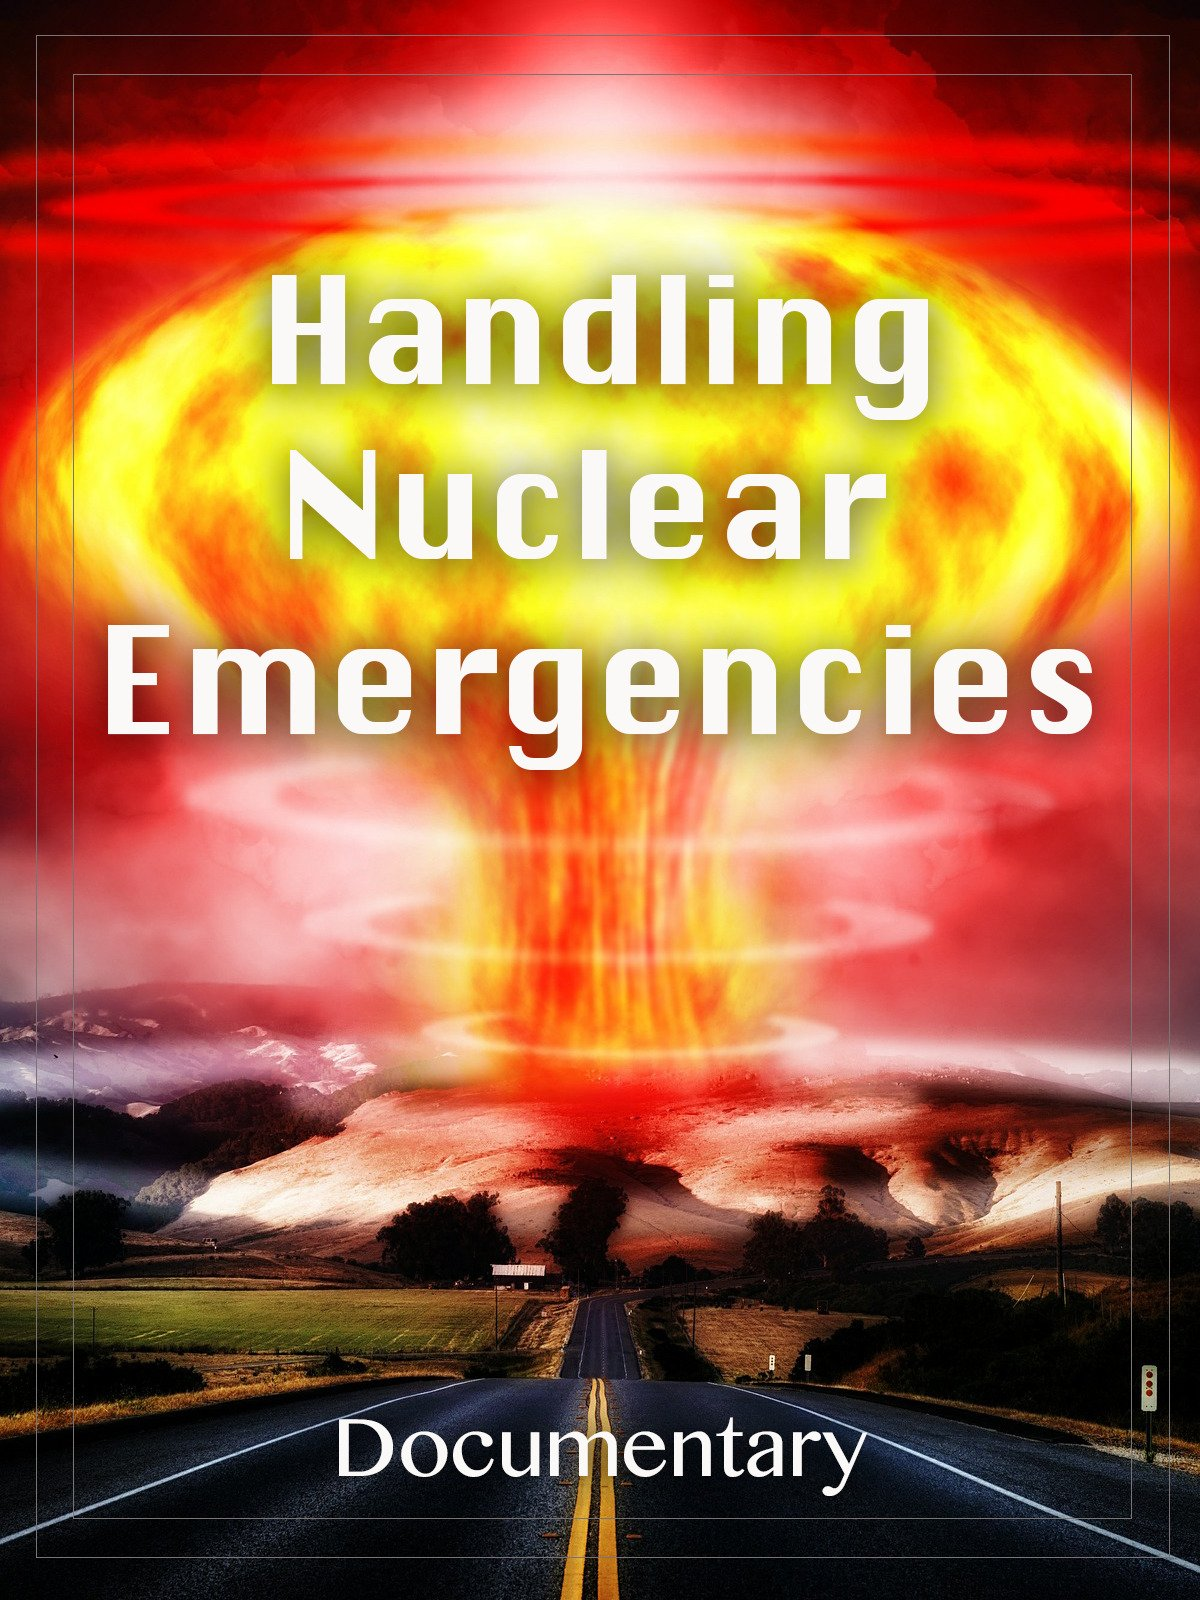 Handling Nuclear Emergencies Documentary